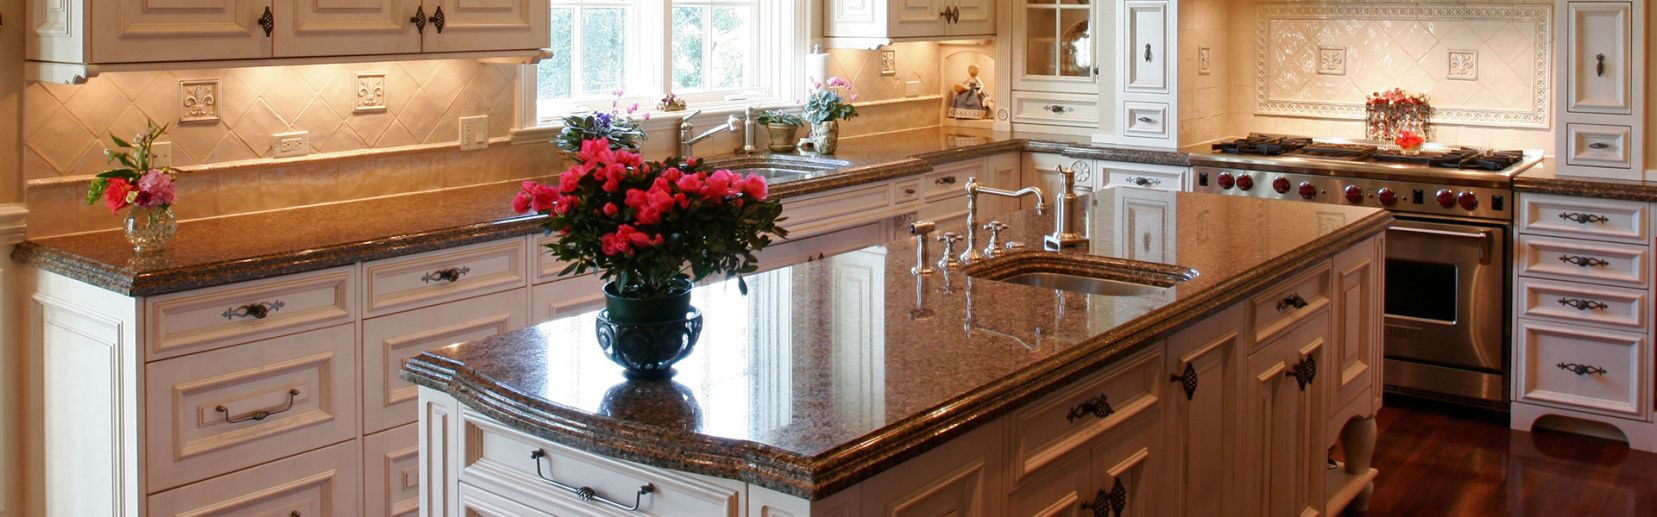 Pin By Erlangfahresi On Granite Countertops Colors Cost Of Kitchen